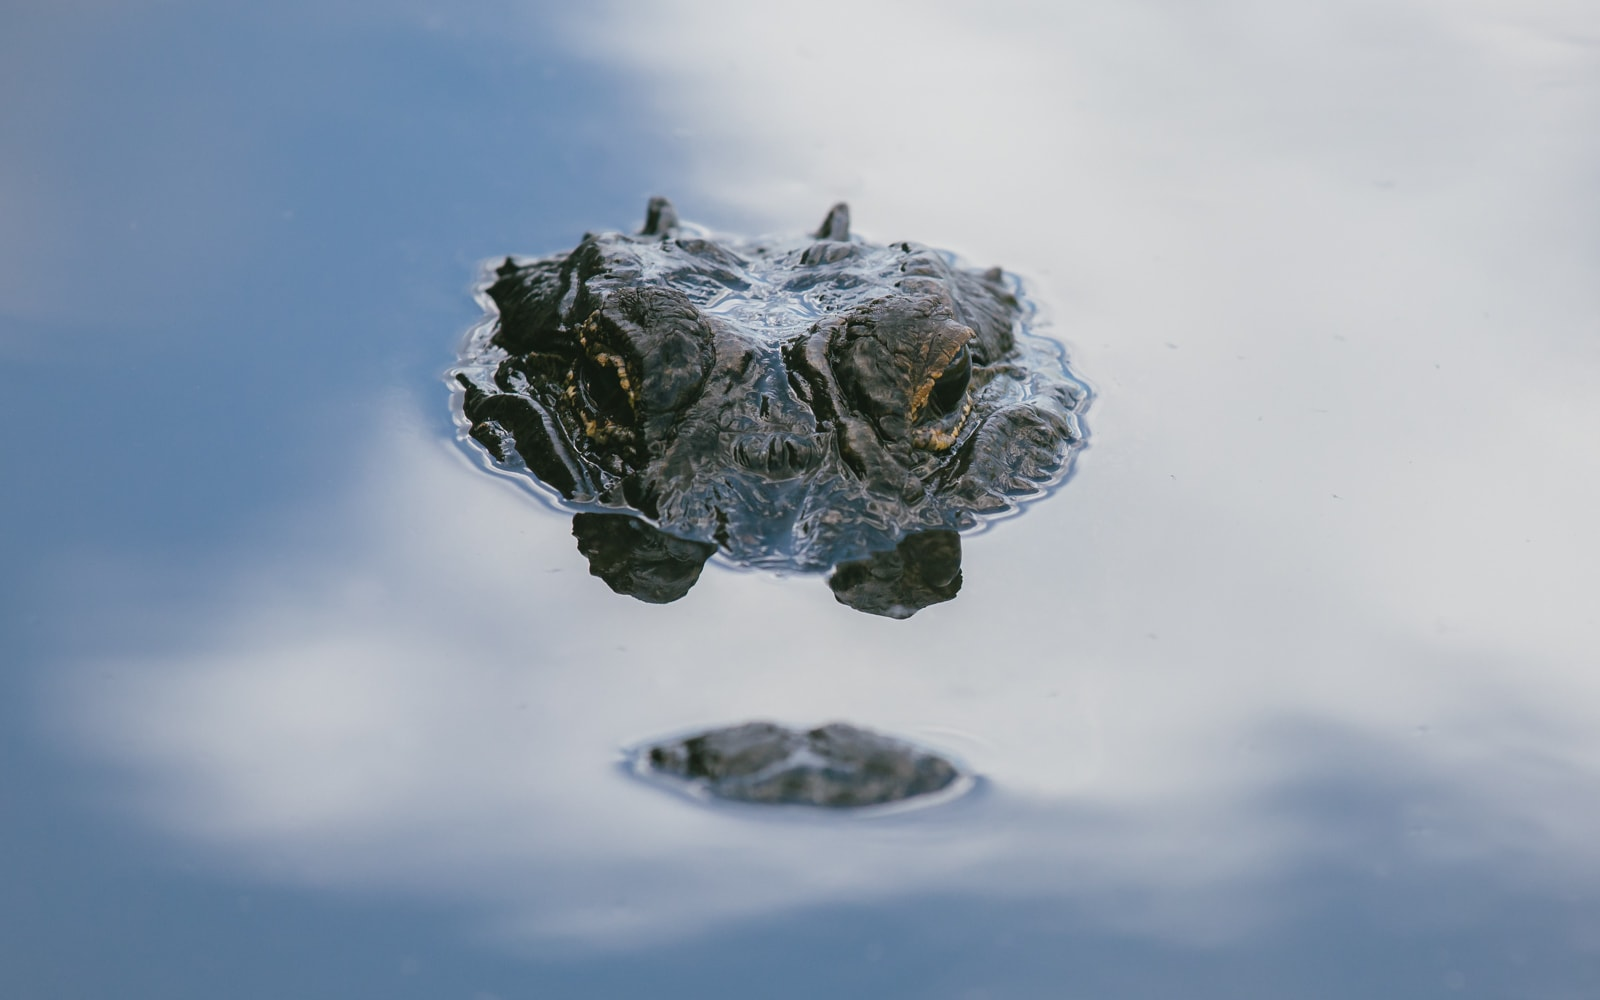 An Alligator peeking above the water in the Florida Everglades